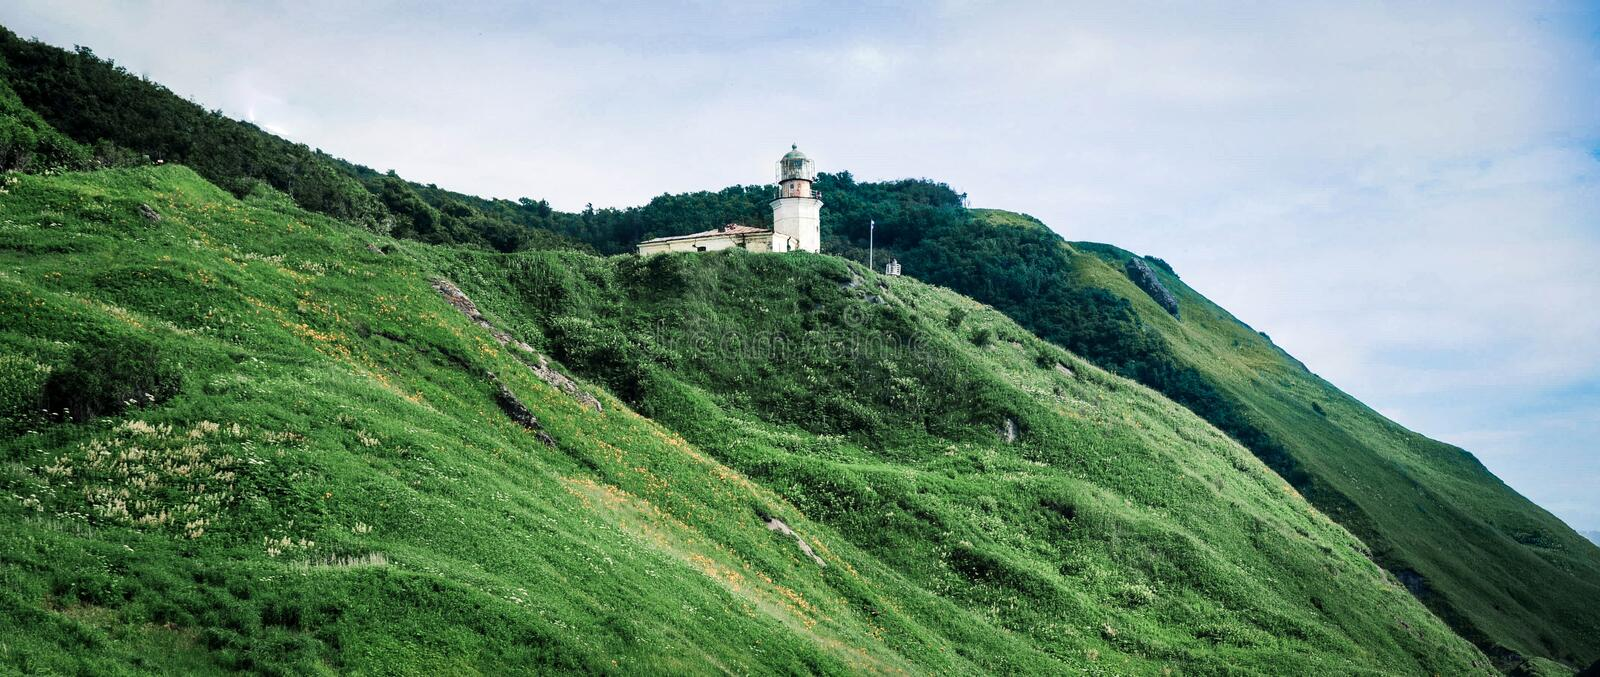 Lighthouse on the hills stock image